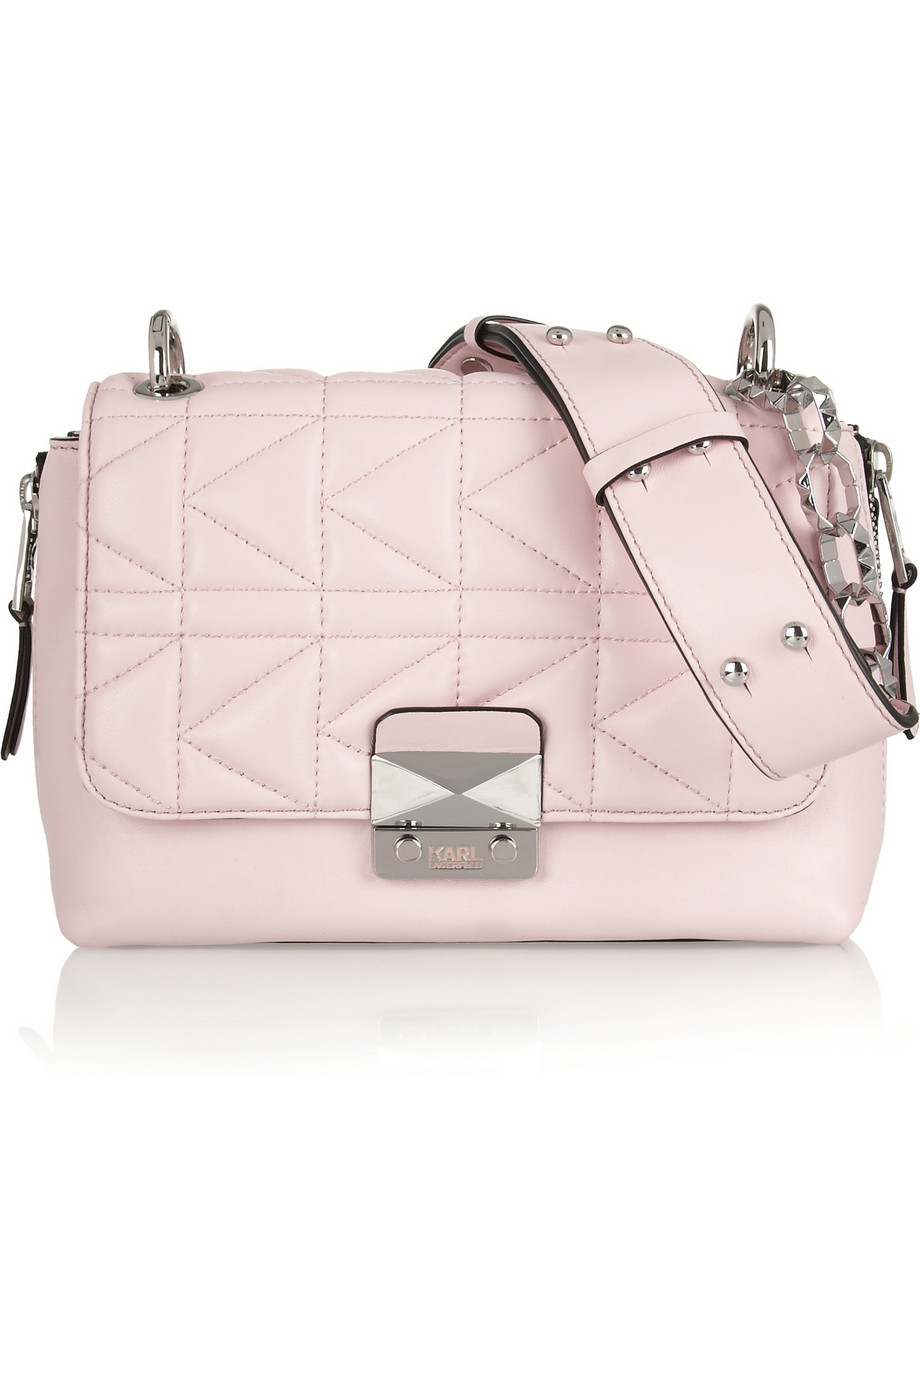 Pink shoulder bag Karl Lagerfeld Clearance Wholesale Price Free Shipping New Arrival Nicekicks Sale Online yzAxG8CWcY